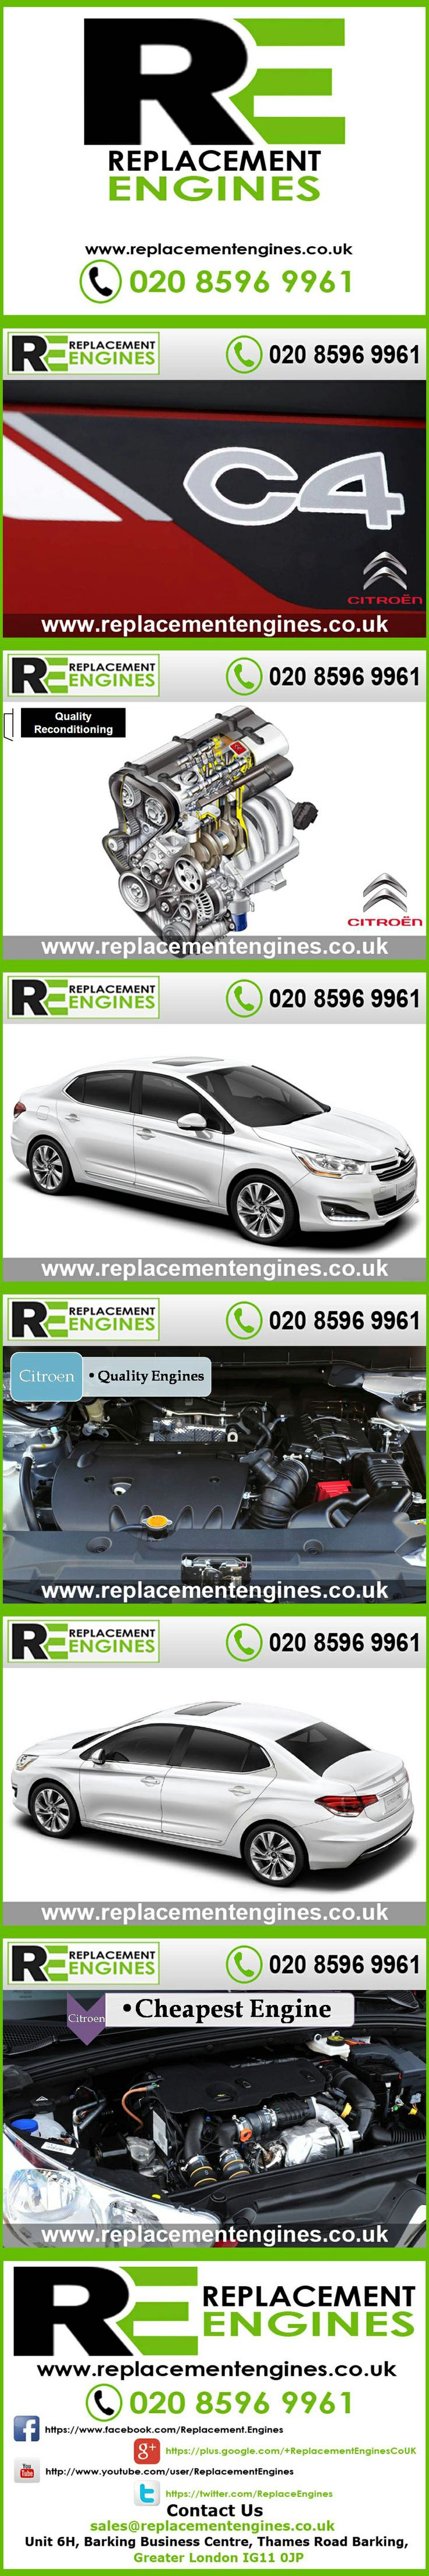 Citroen C4 Engines for sale at the cheapest prices, we have low mileage used & reconditioned engines in stock now, ready to be delivered to anywhere in the UK or overseas, visit Replacement Engines website here.  http://www.replacementengines.co.uk/car-md.asp?part=all-citroen-c4-engine&mo_id=32334